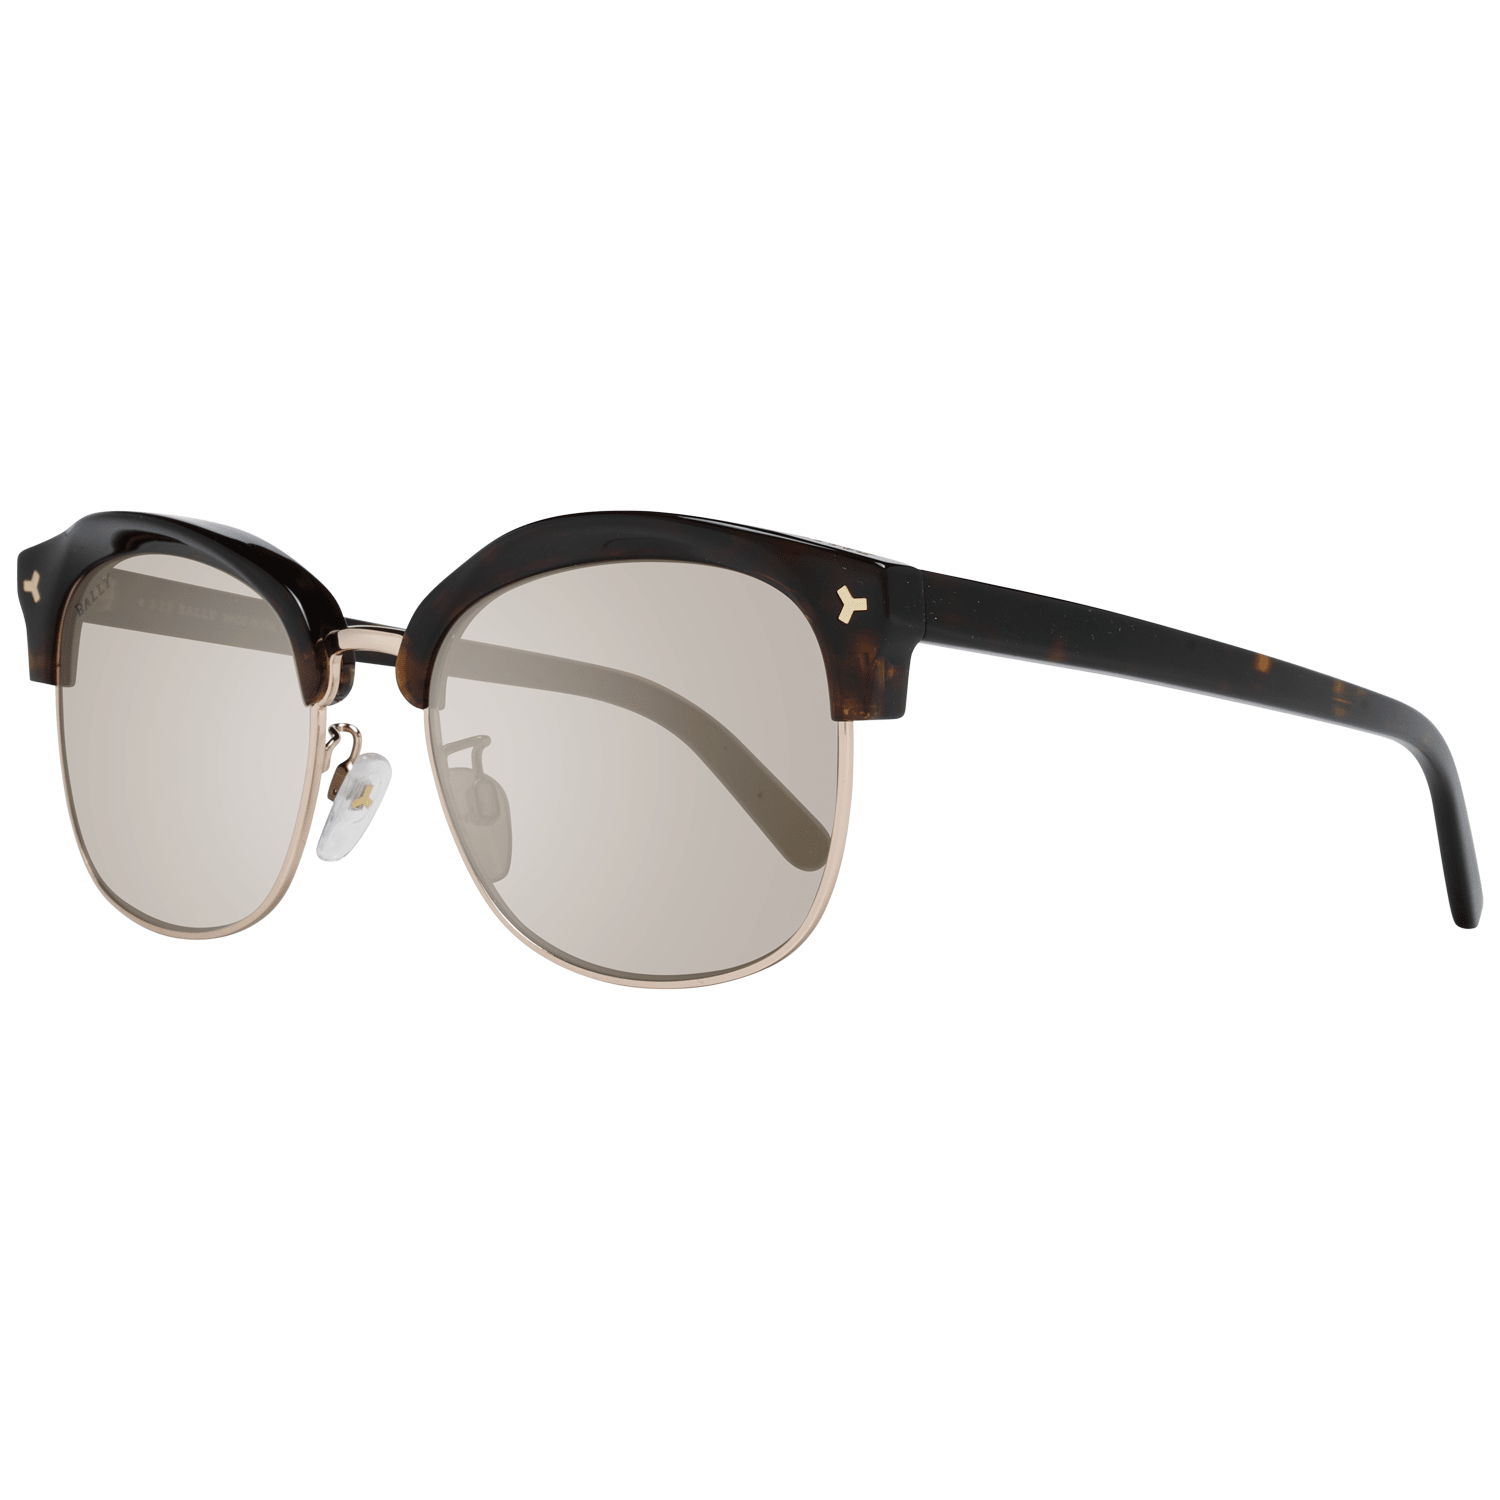 Bally Unisex Sunglasses Brown BY0012-H 5456L